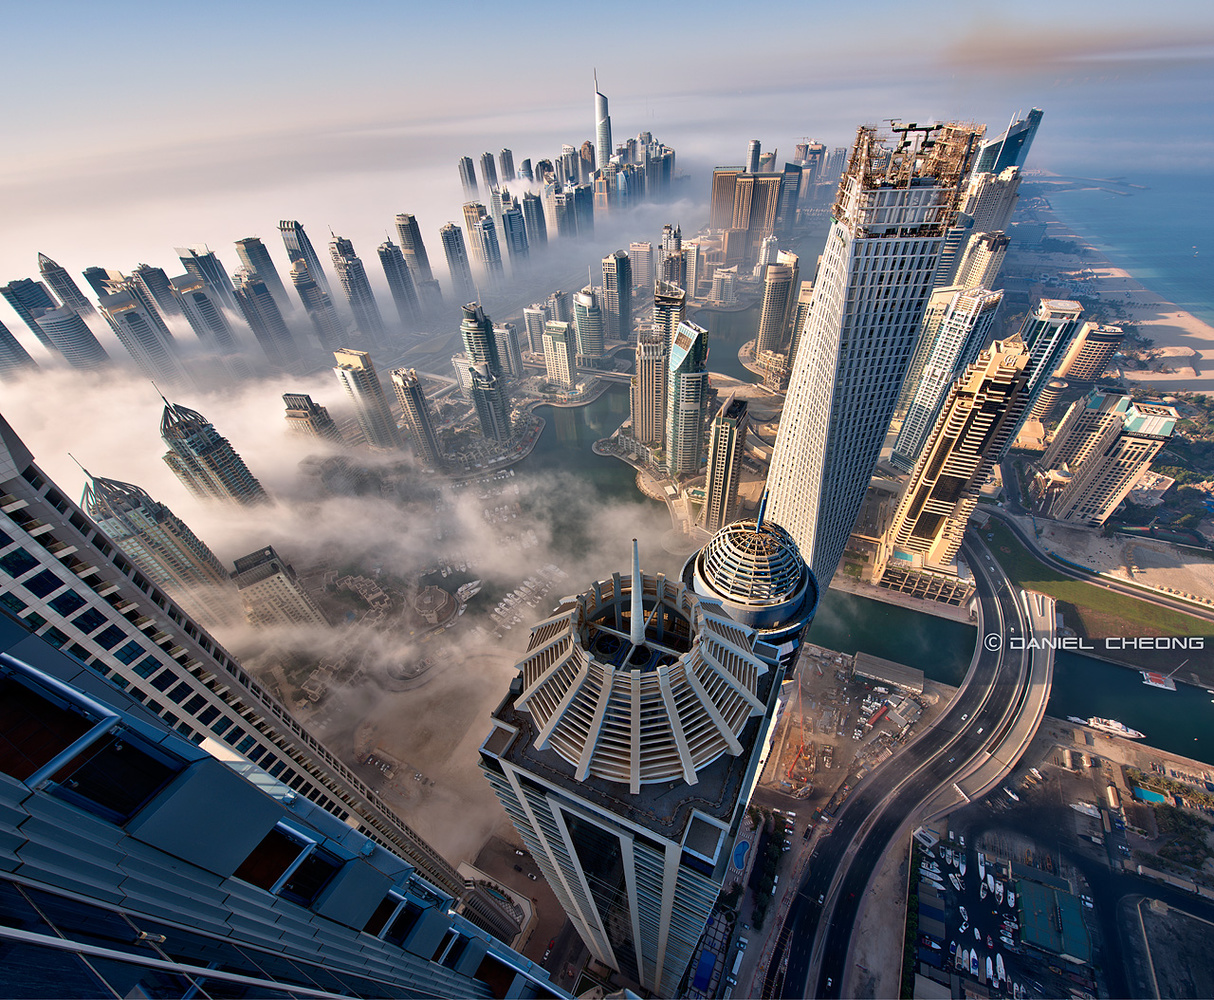 Learn to Master Cityscapes Like Dubai Photographer Daniel Cheong | Fstoppers